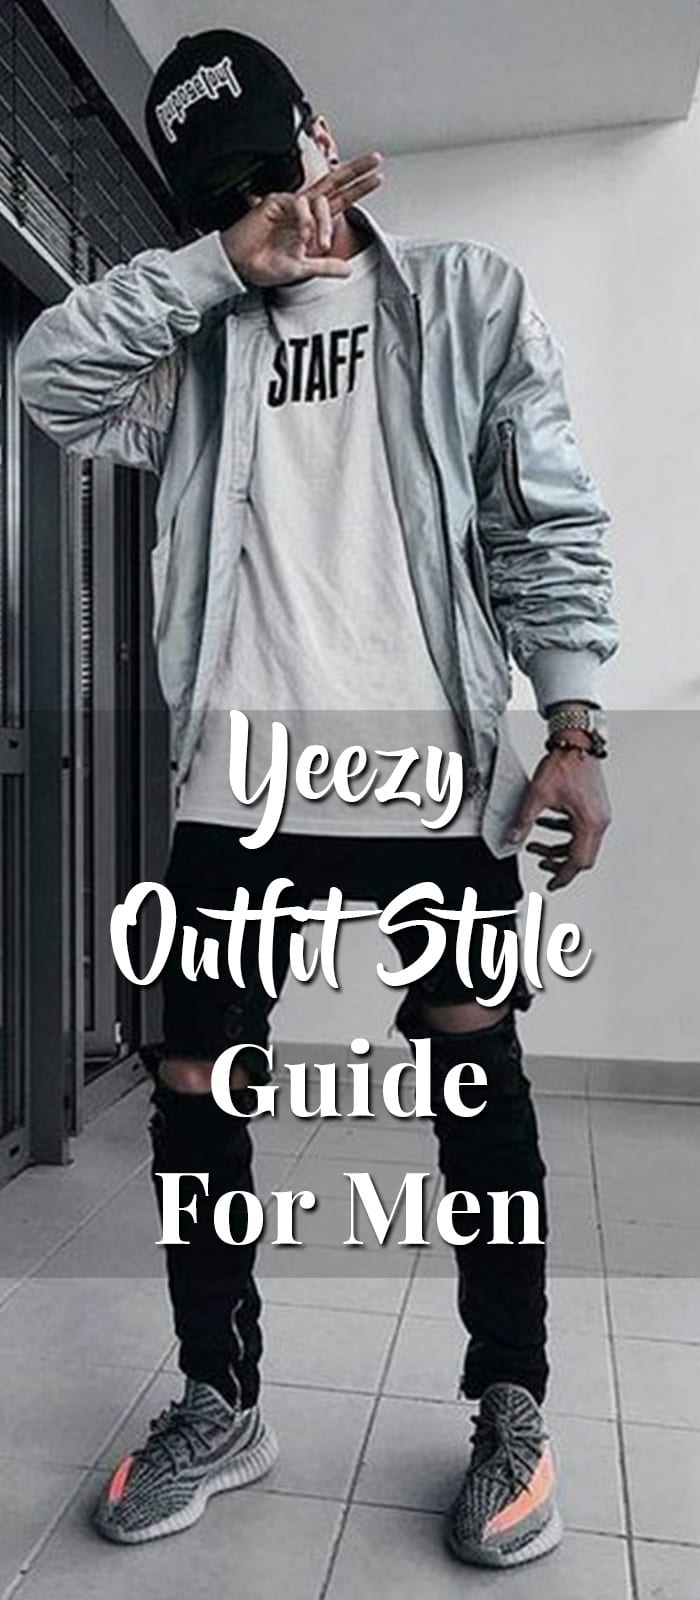 Yeezy Outfit Style Guide For Men